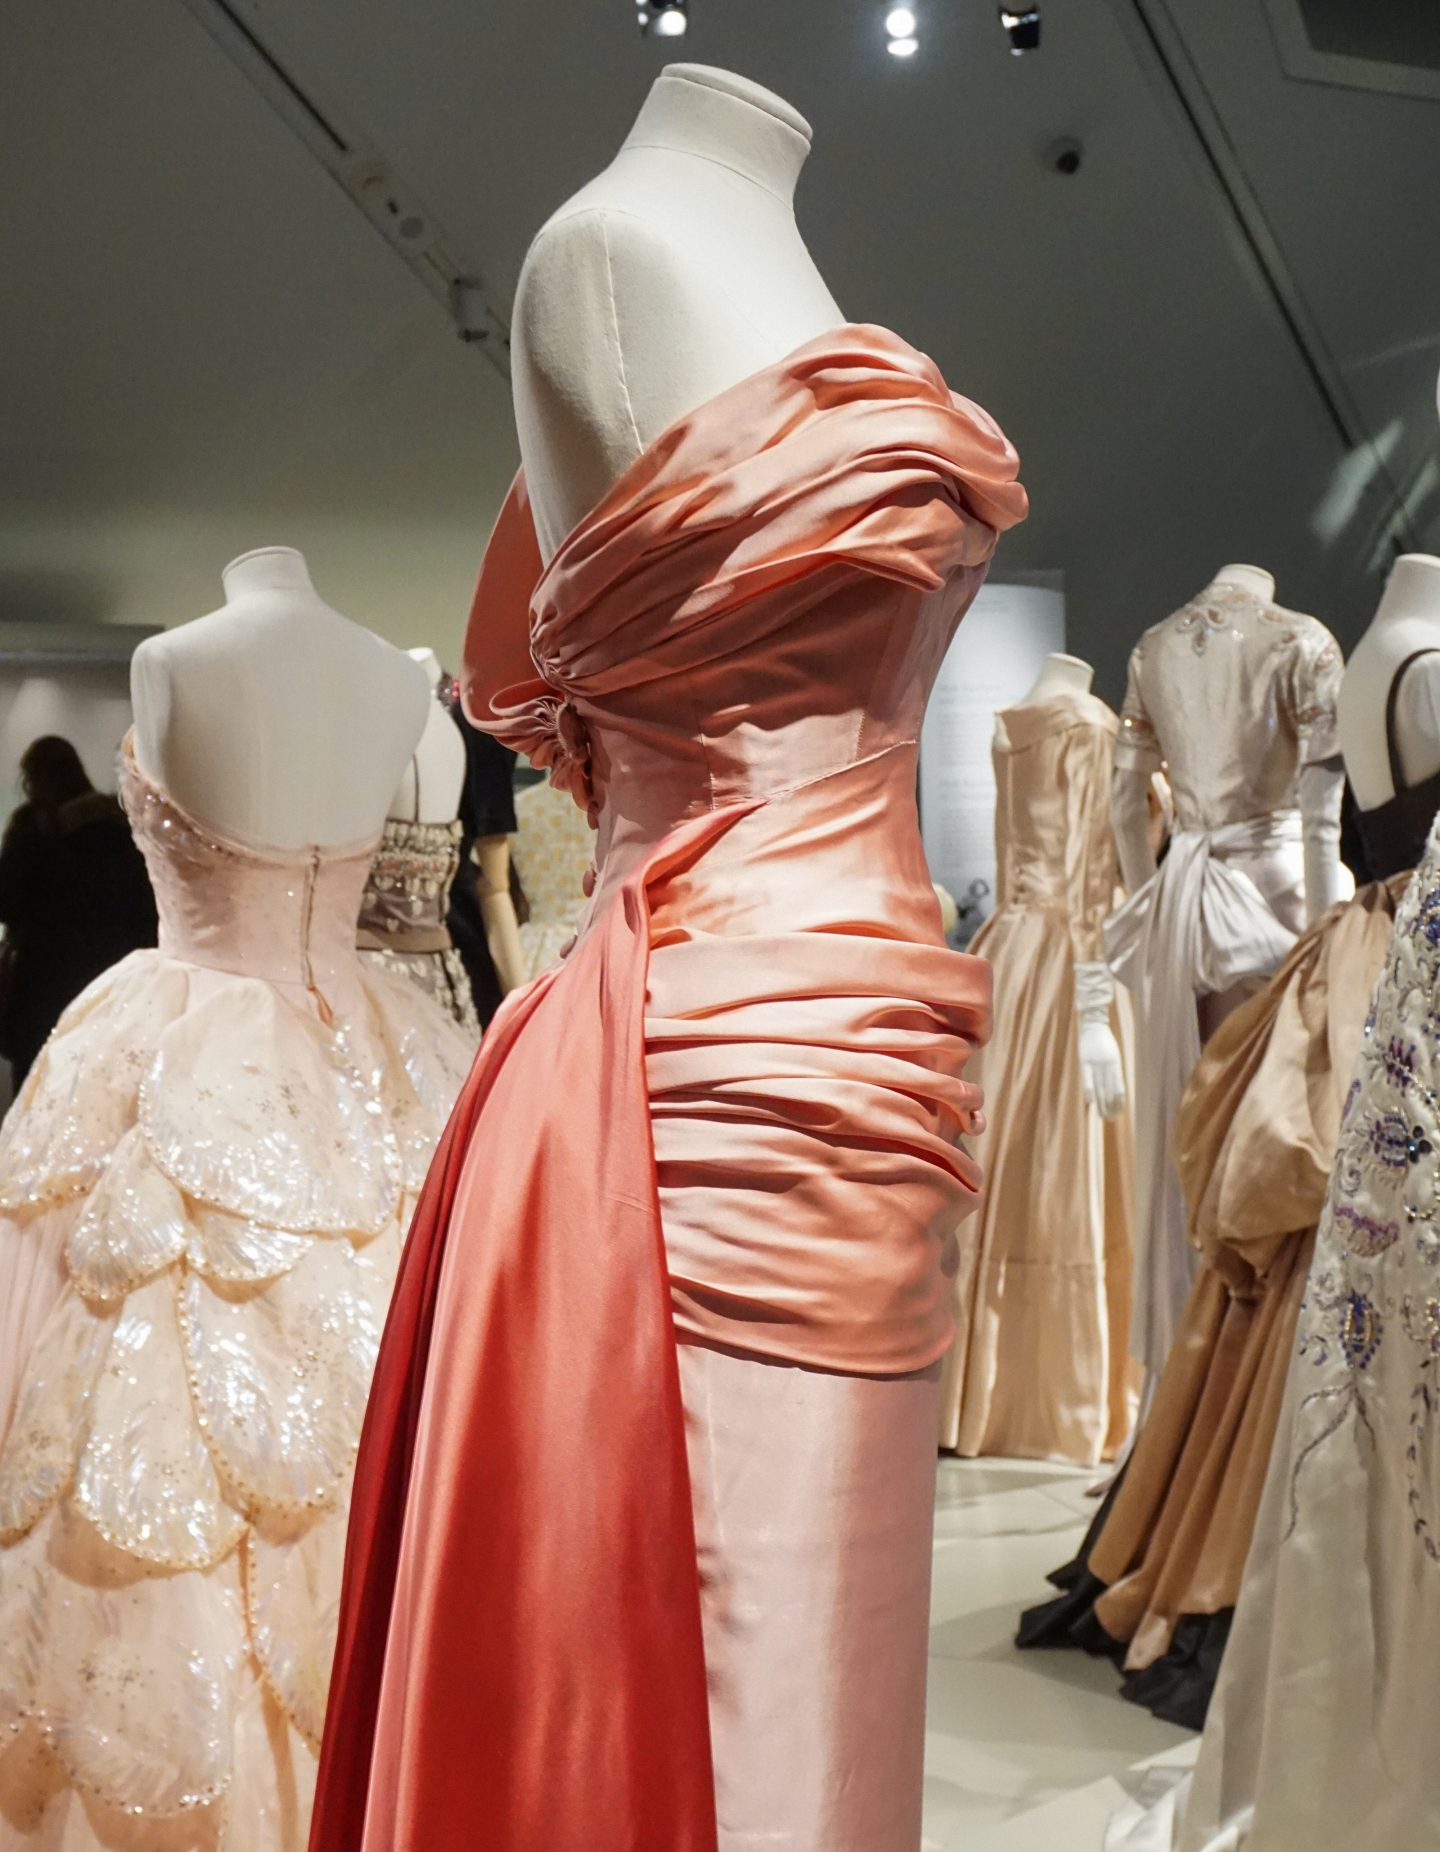 Christian Dior Exhibit At The ROM